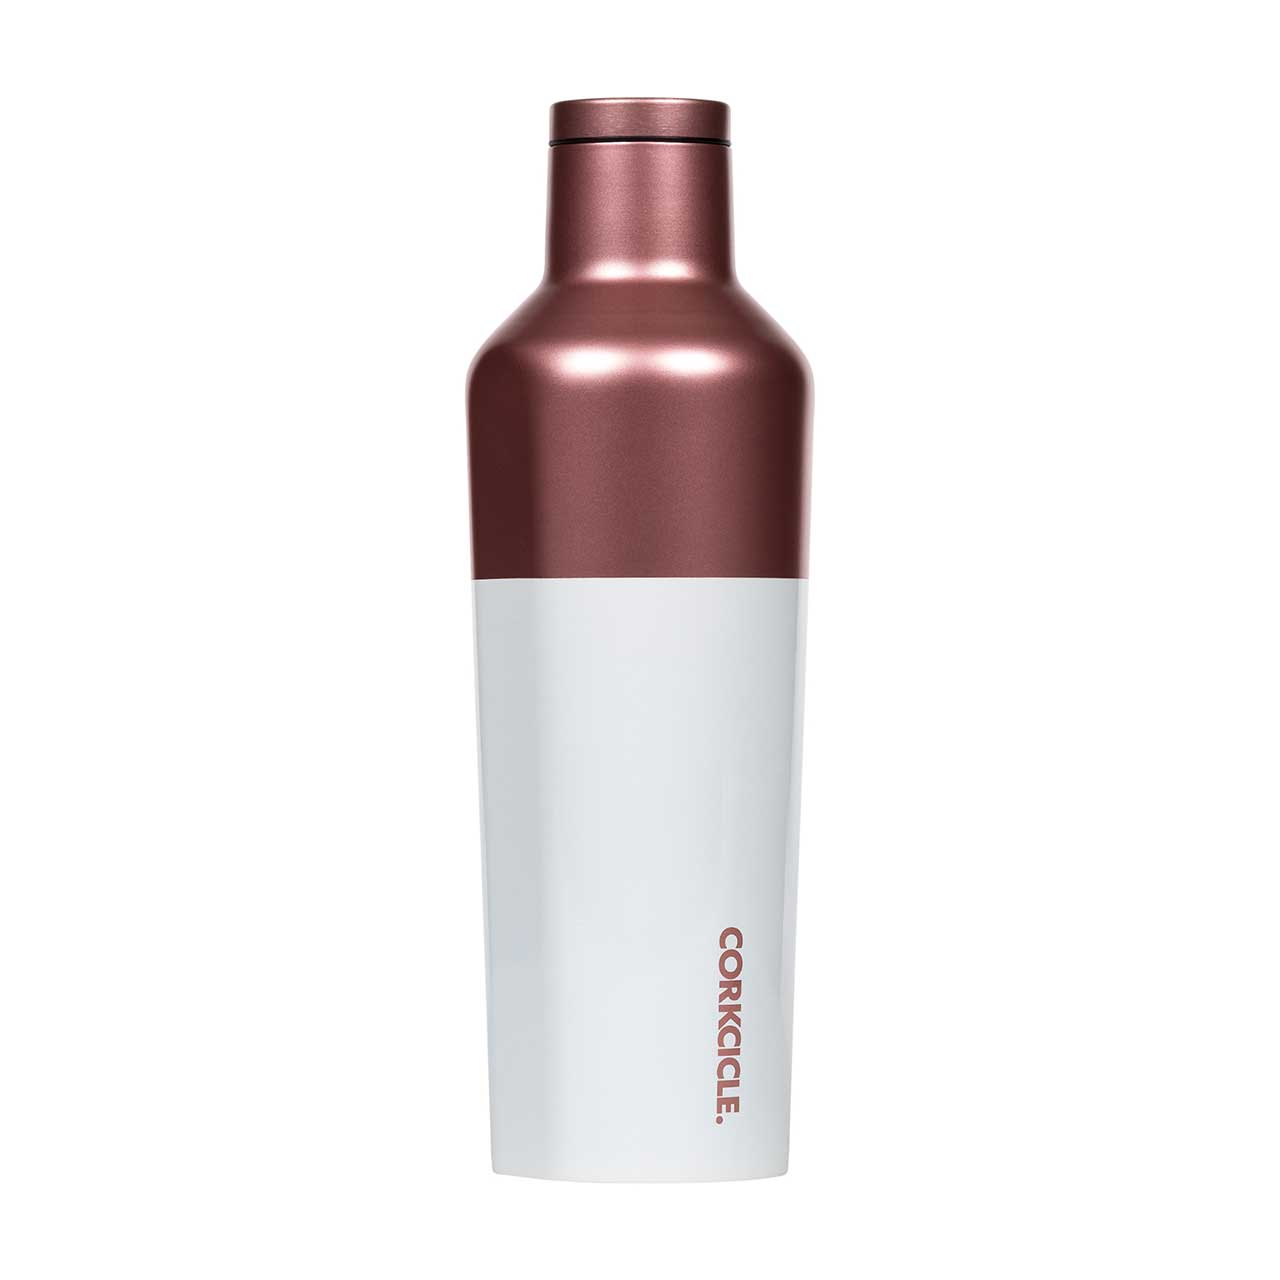 CORKCICLE. Láhev Canteen Color Block – Modern Rosé – 475 ml